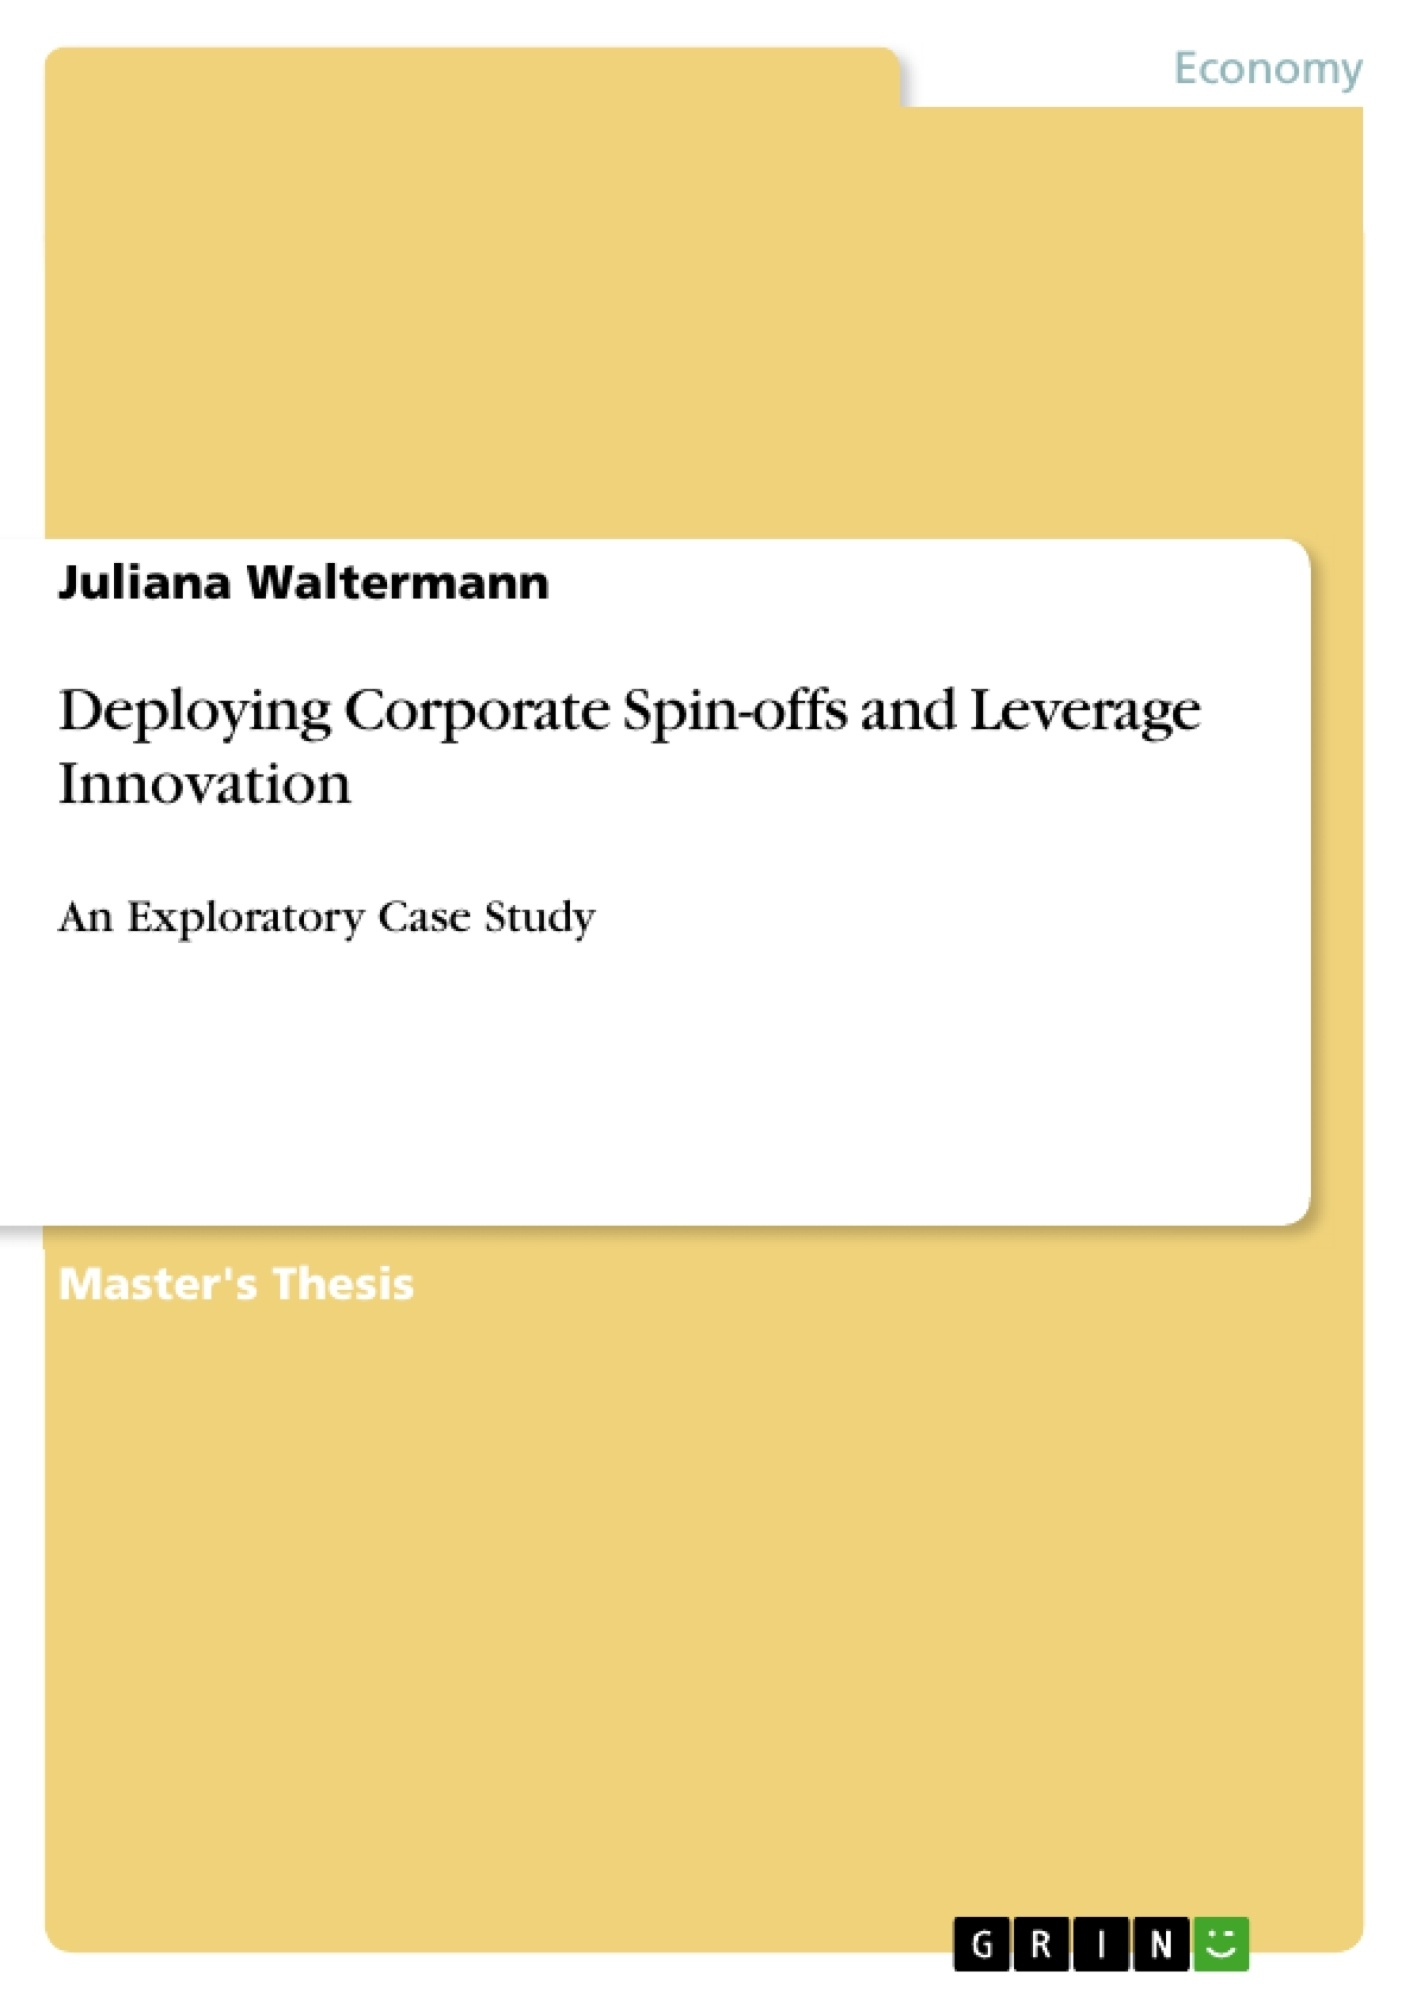 Title: Deploying Corporate Spin-offs and Leverage Innovation